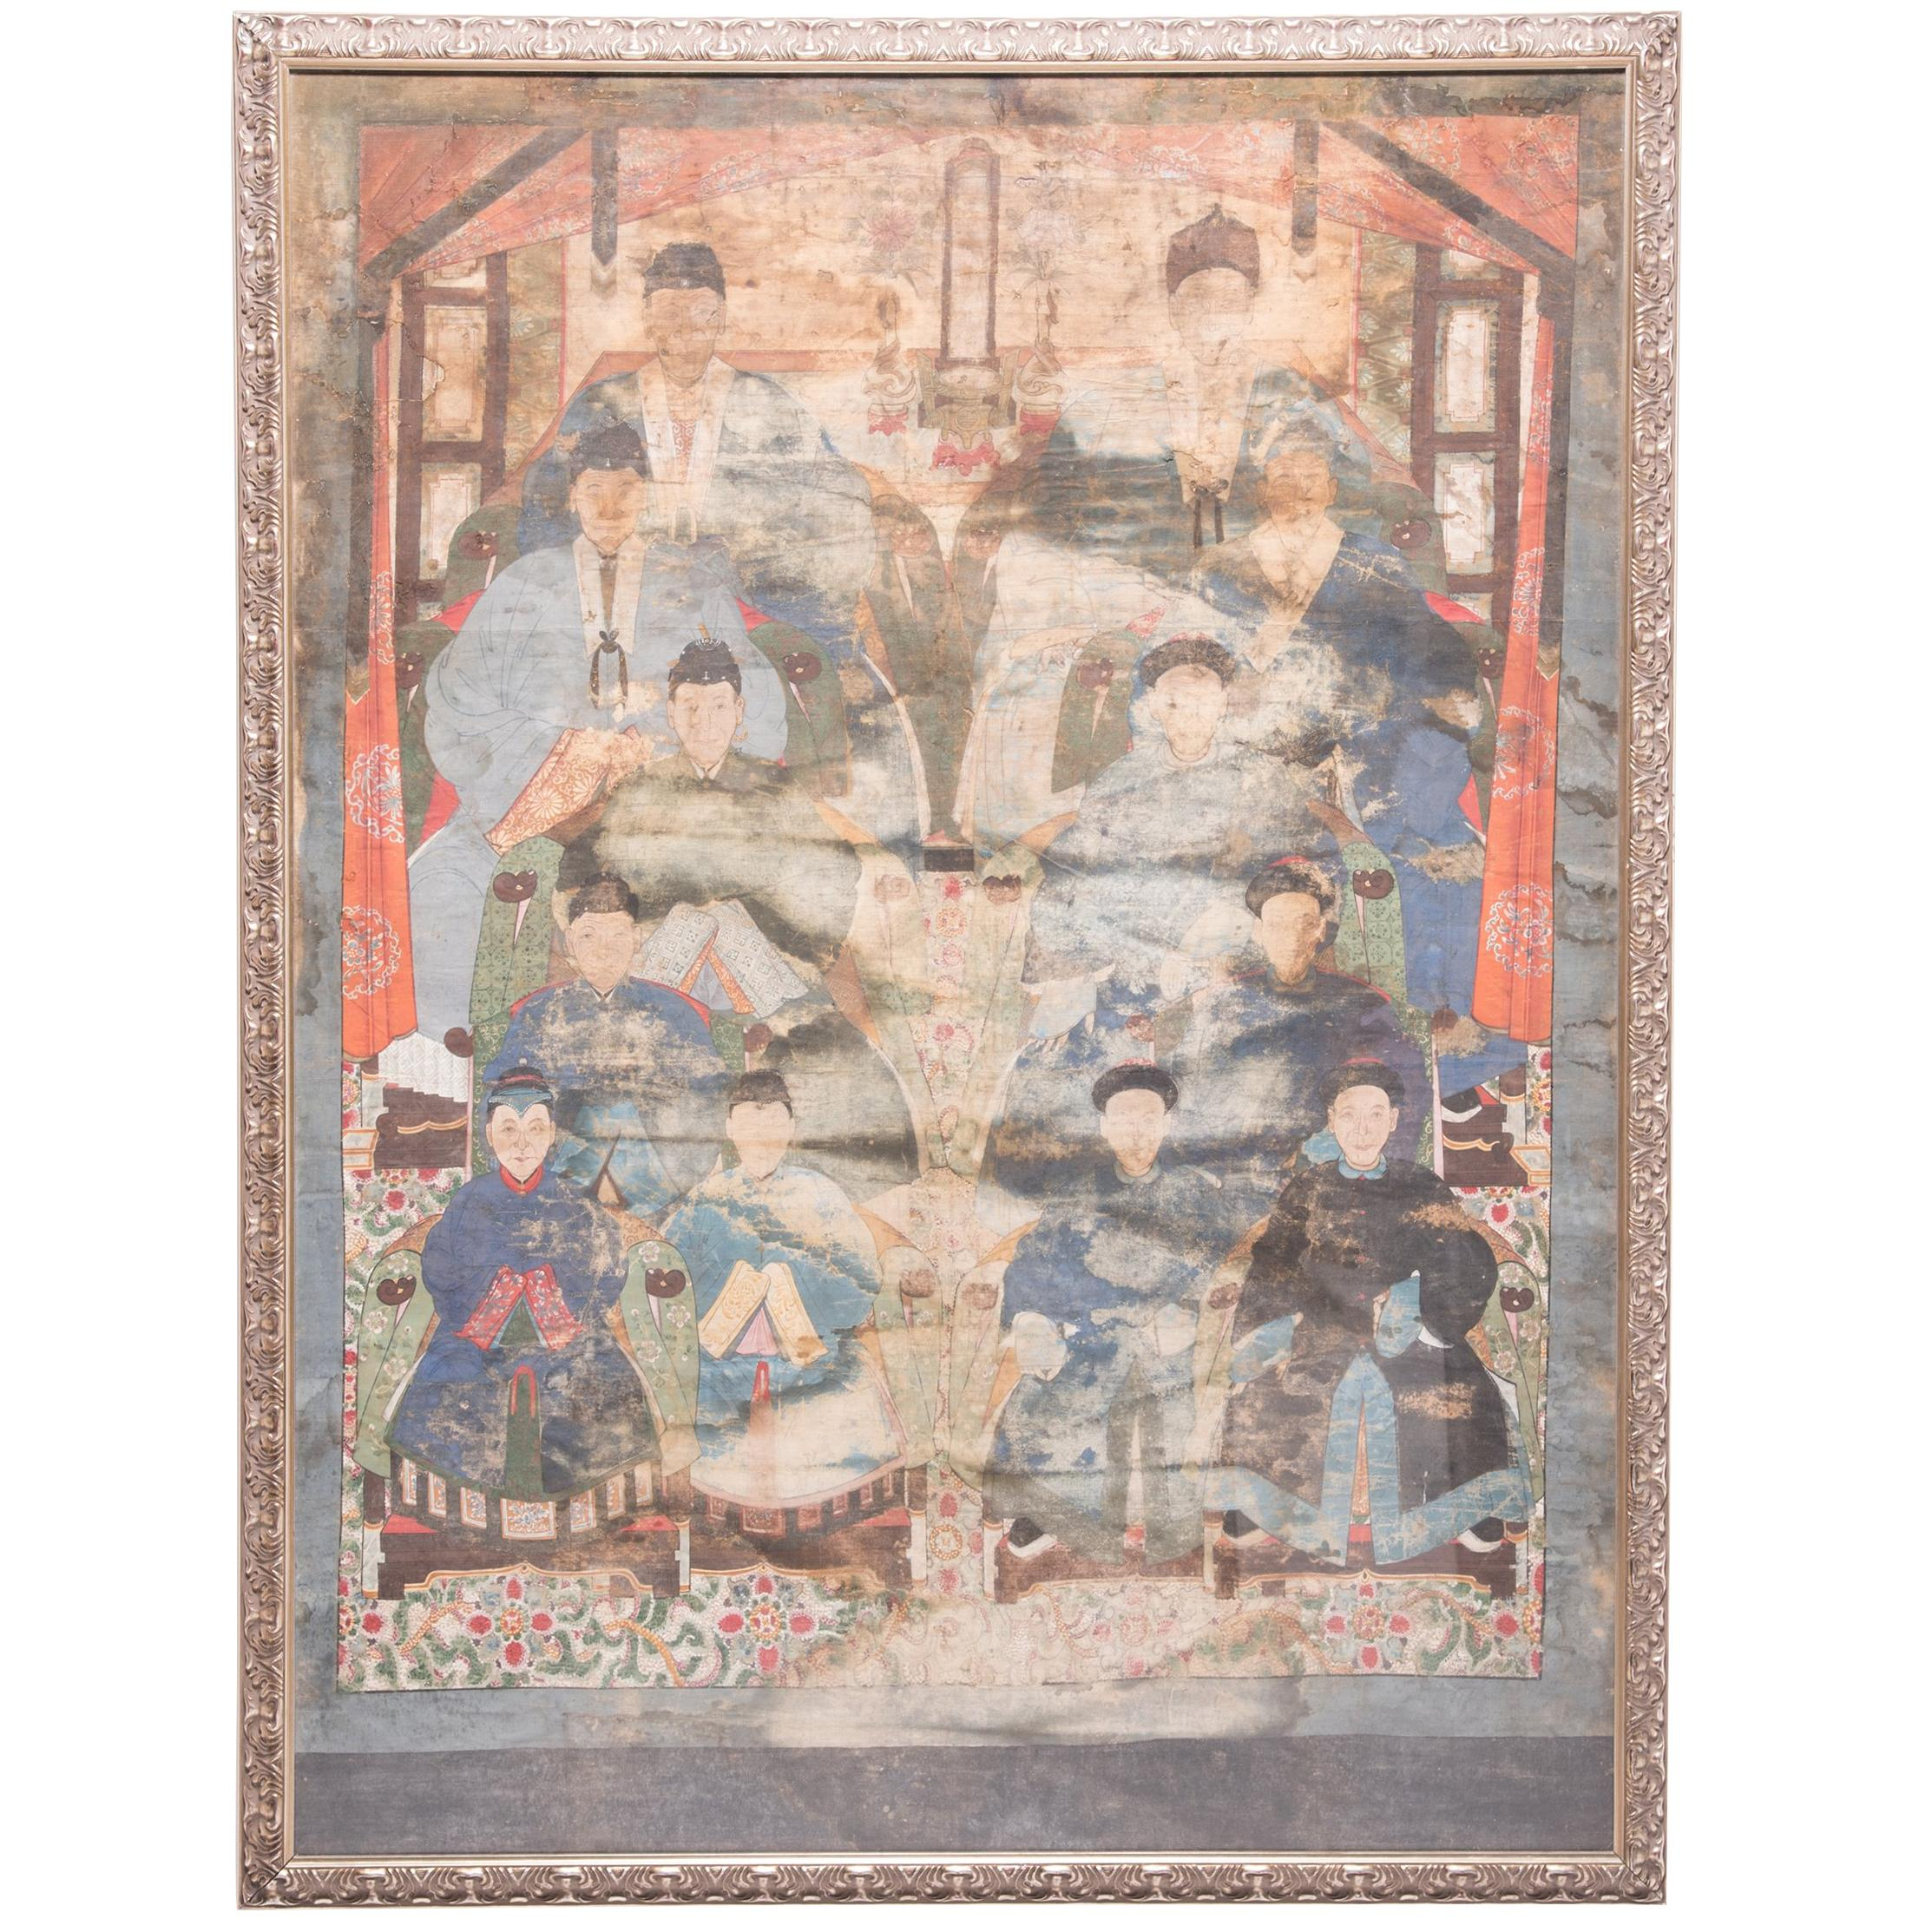 Monumental Late 19th Century Chinese Ancestral Portrait